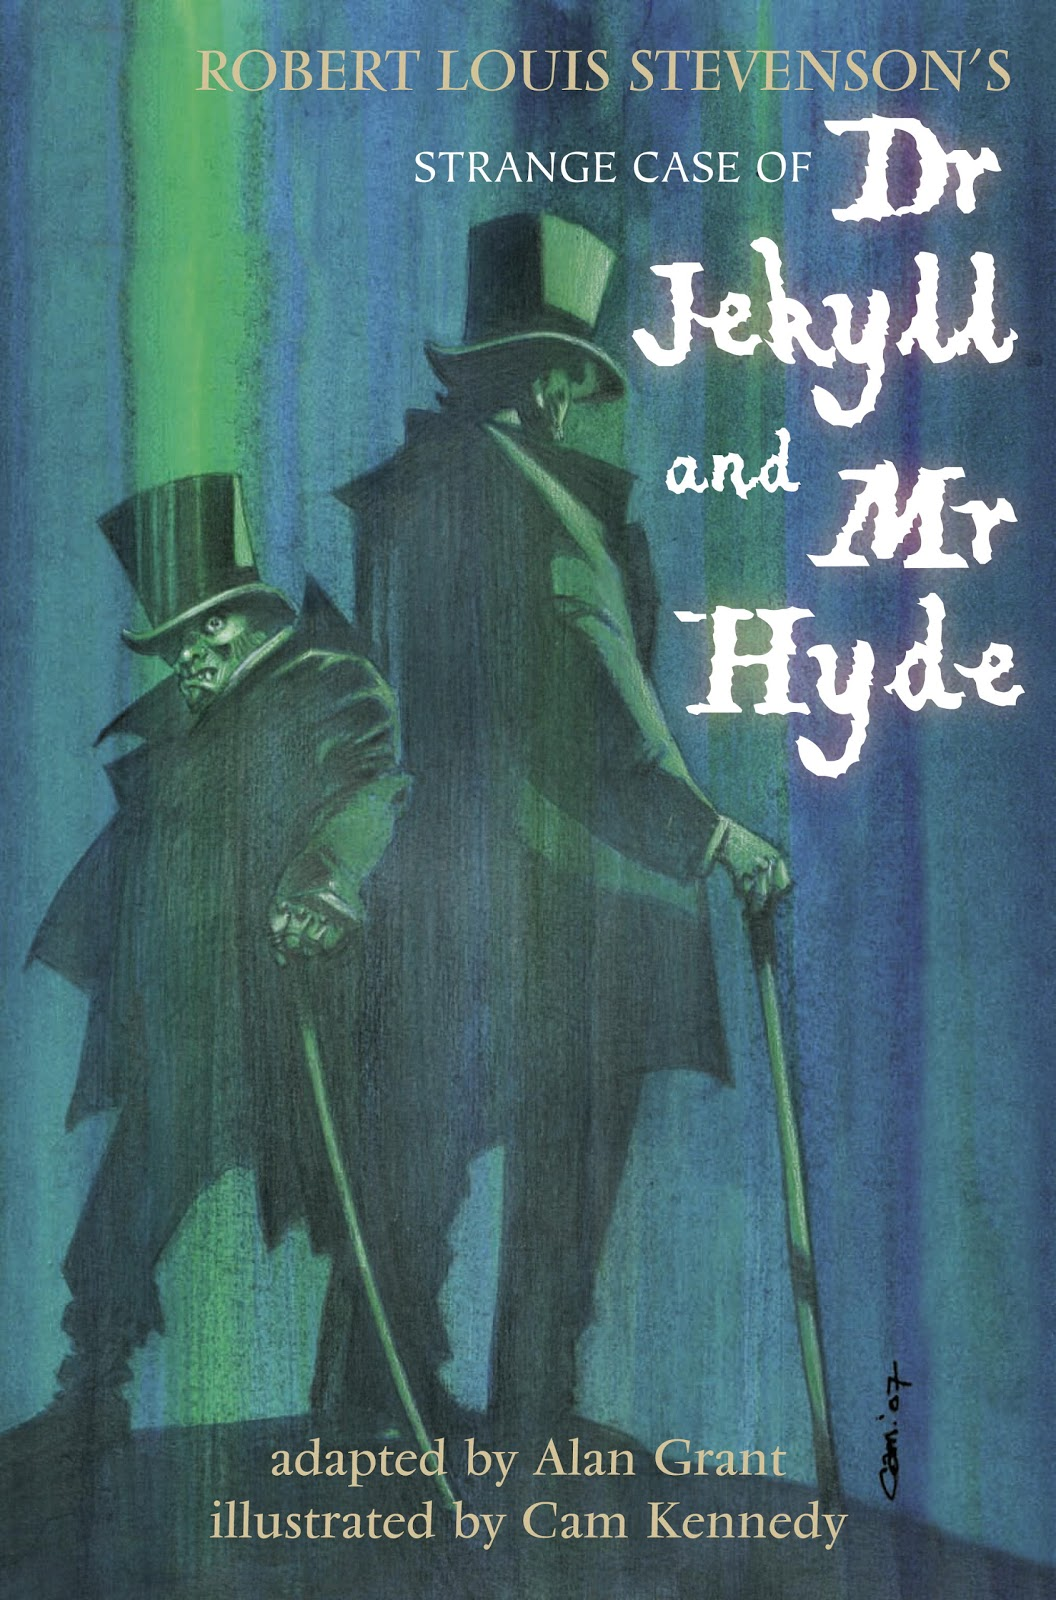 The Strange Case of Dr. Jekyll and Mr. Hyde Quotes